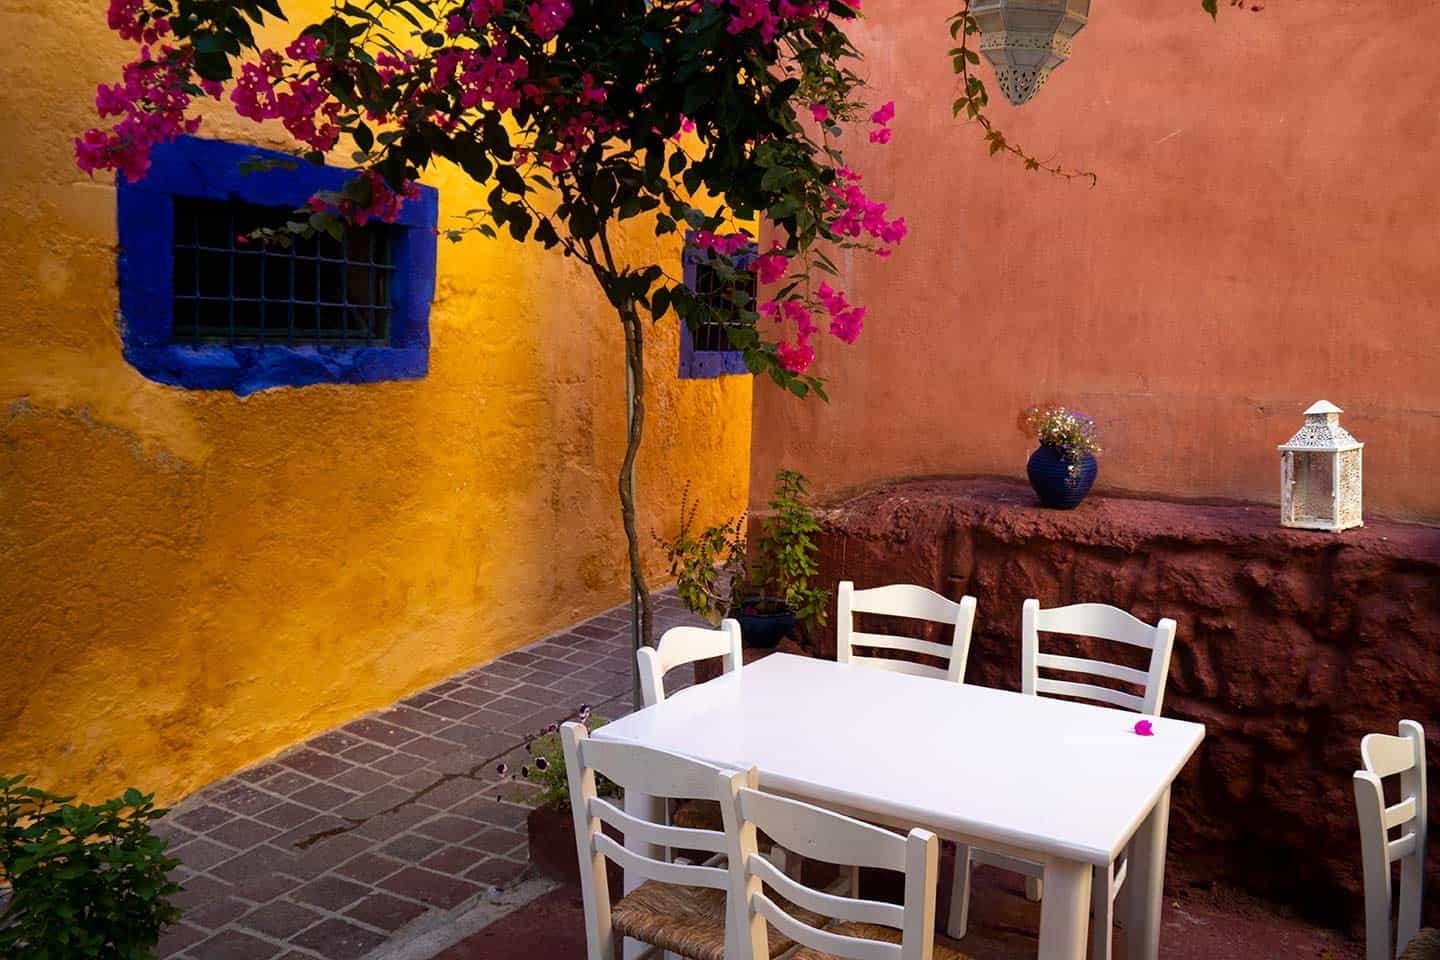 Image of a table in the garden of the Well of the Turk restaurant in Chania Crete Greece